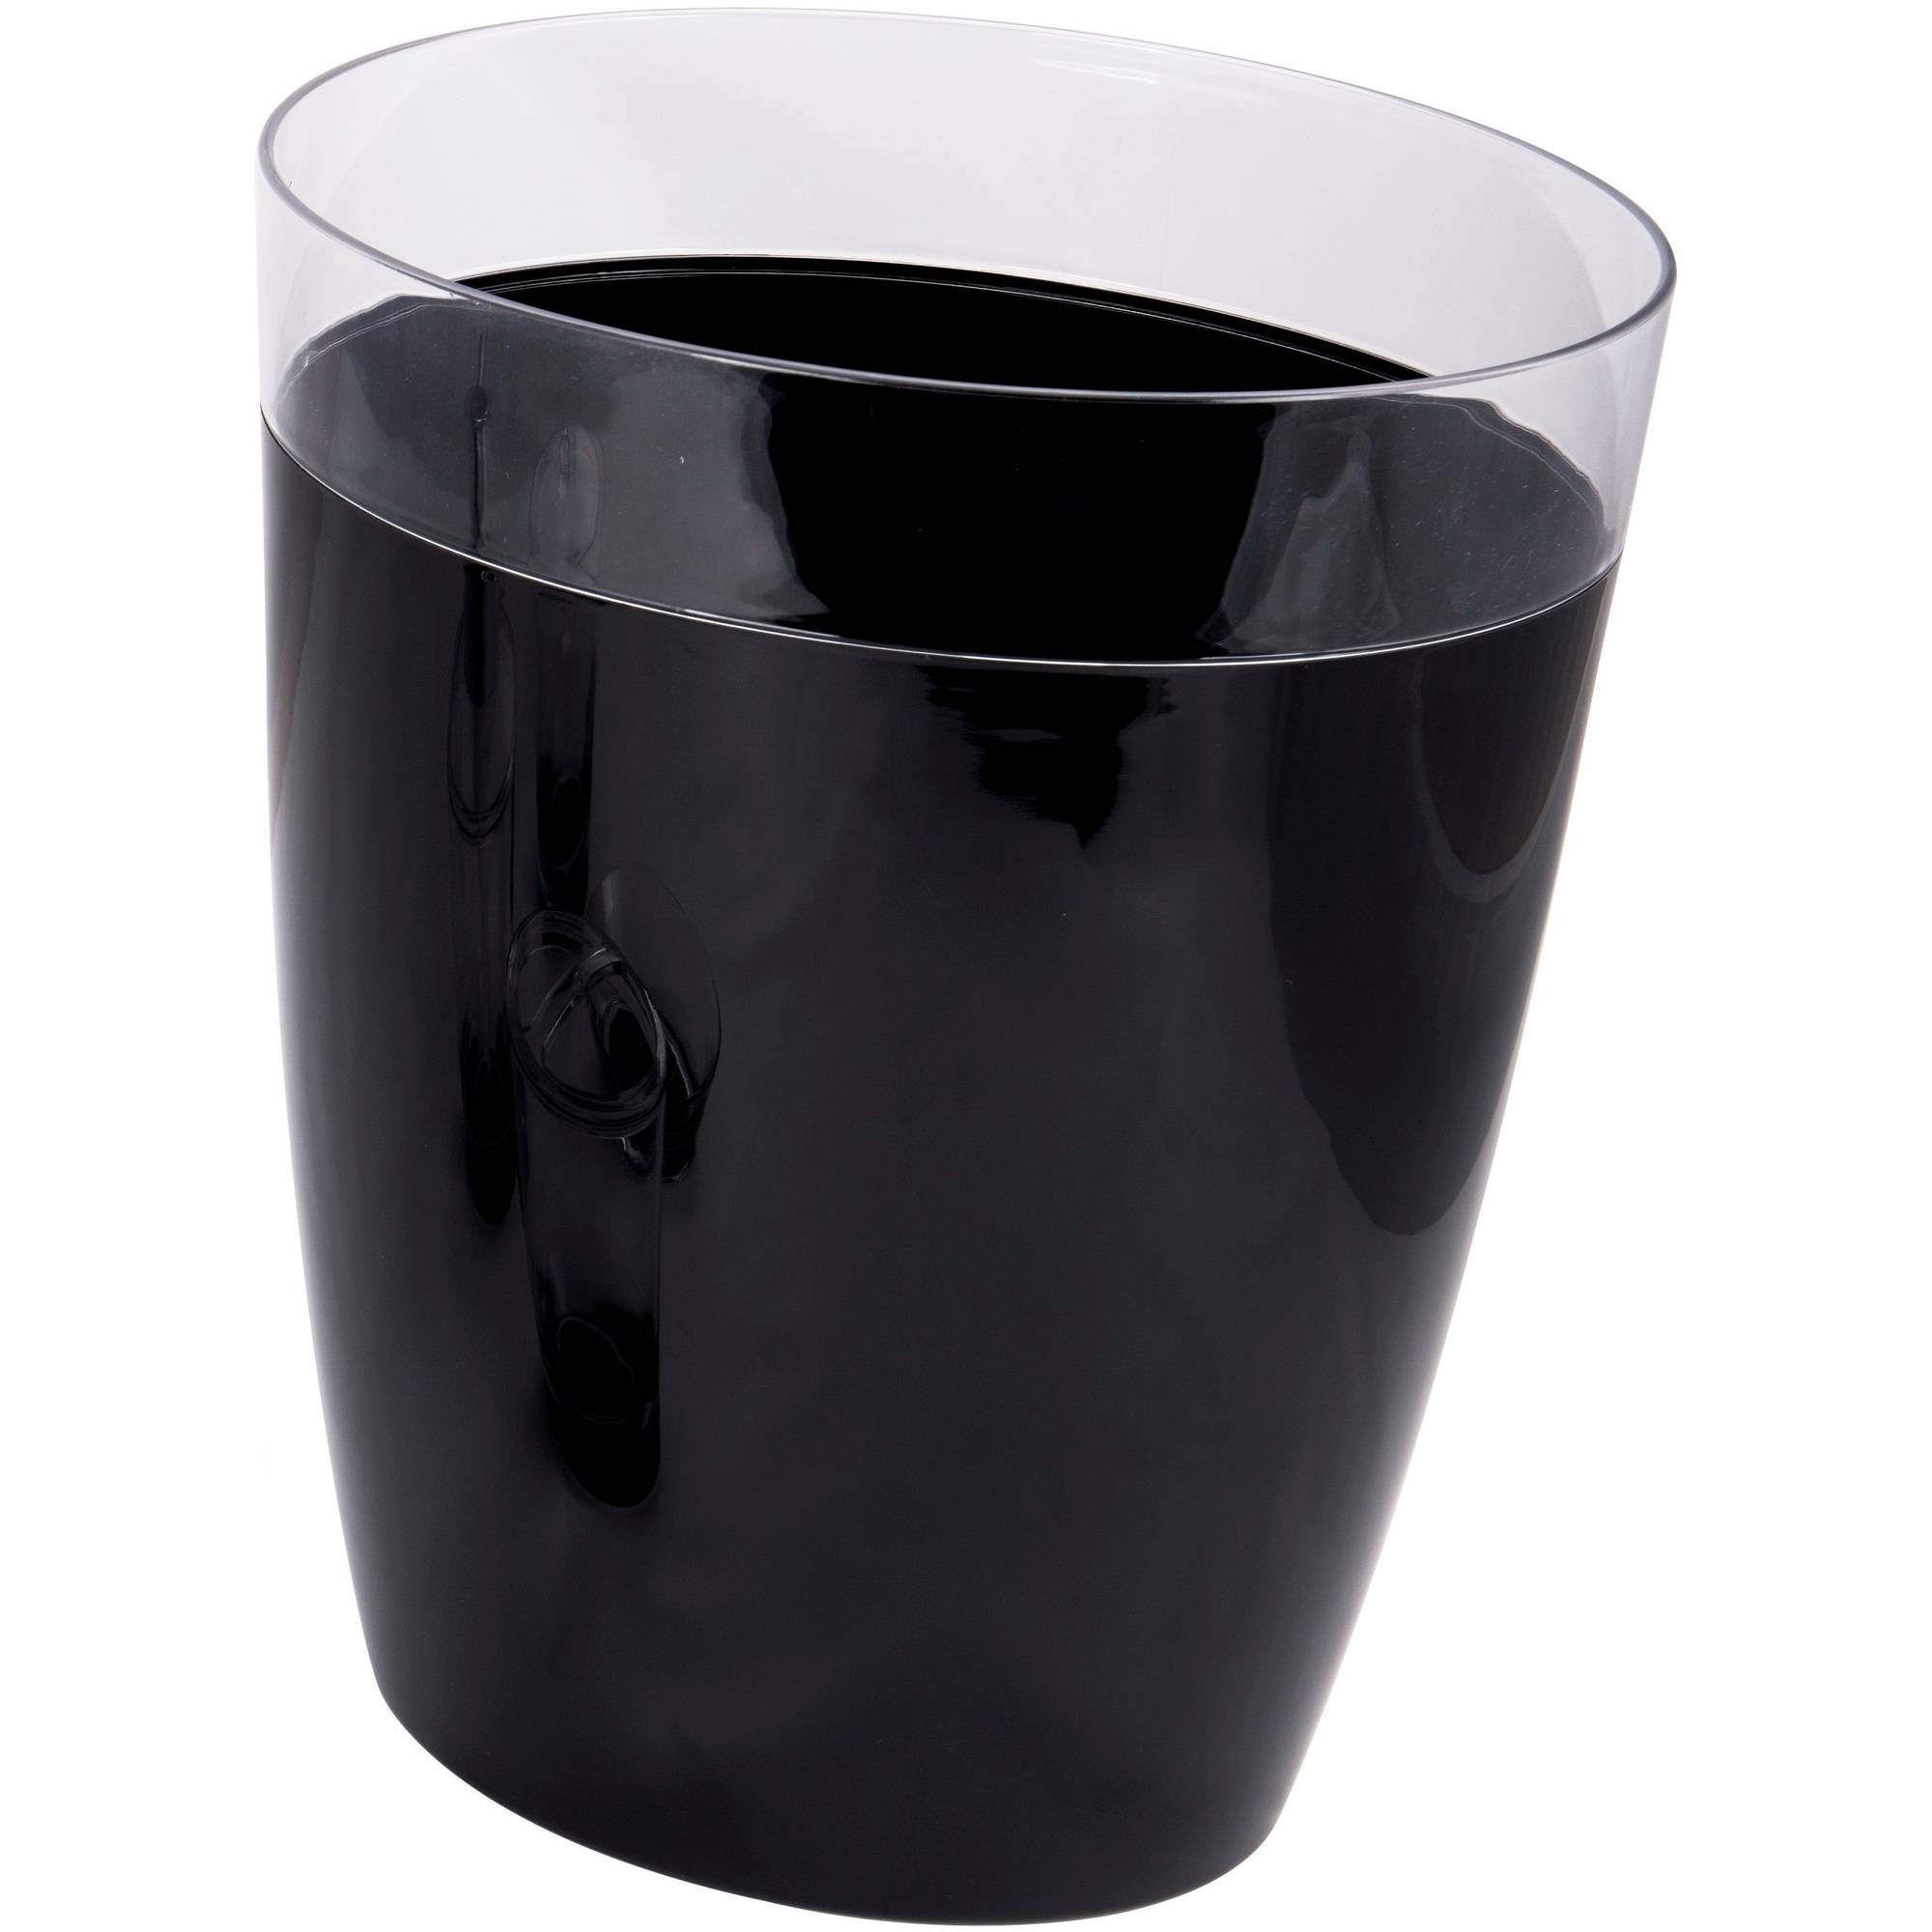 Mainstays True Colors Wastebasket